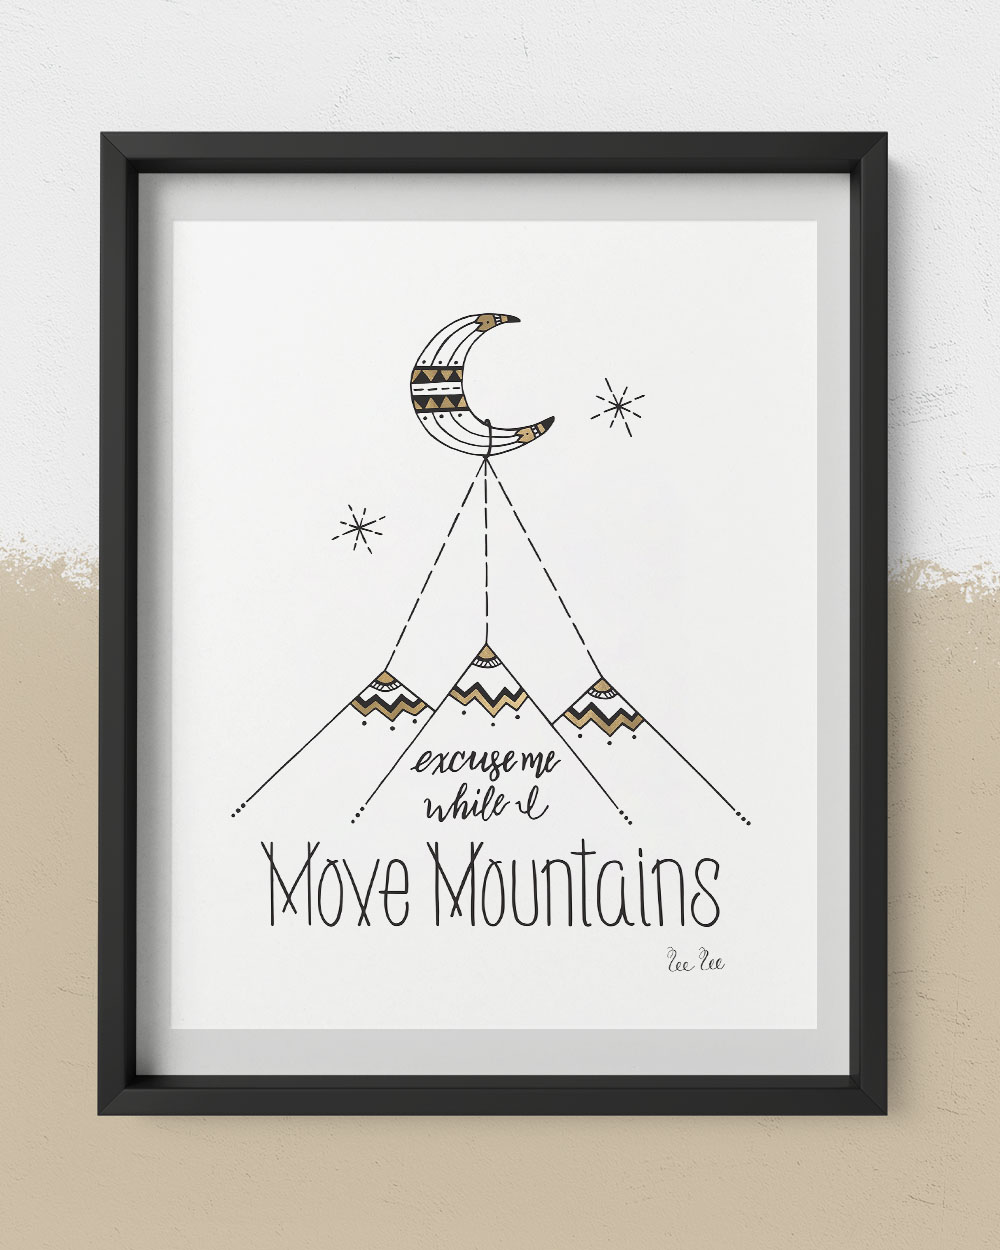 MoveMountains-12x16Print-18x14frame-Blac